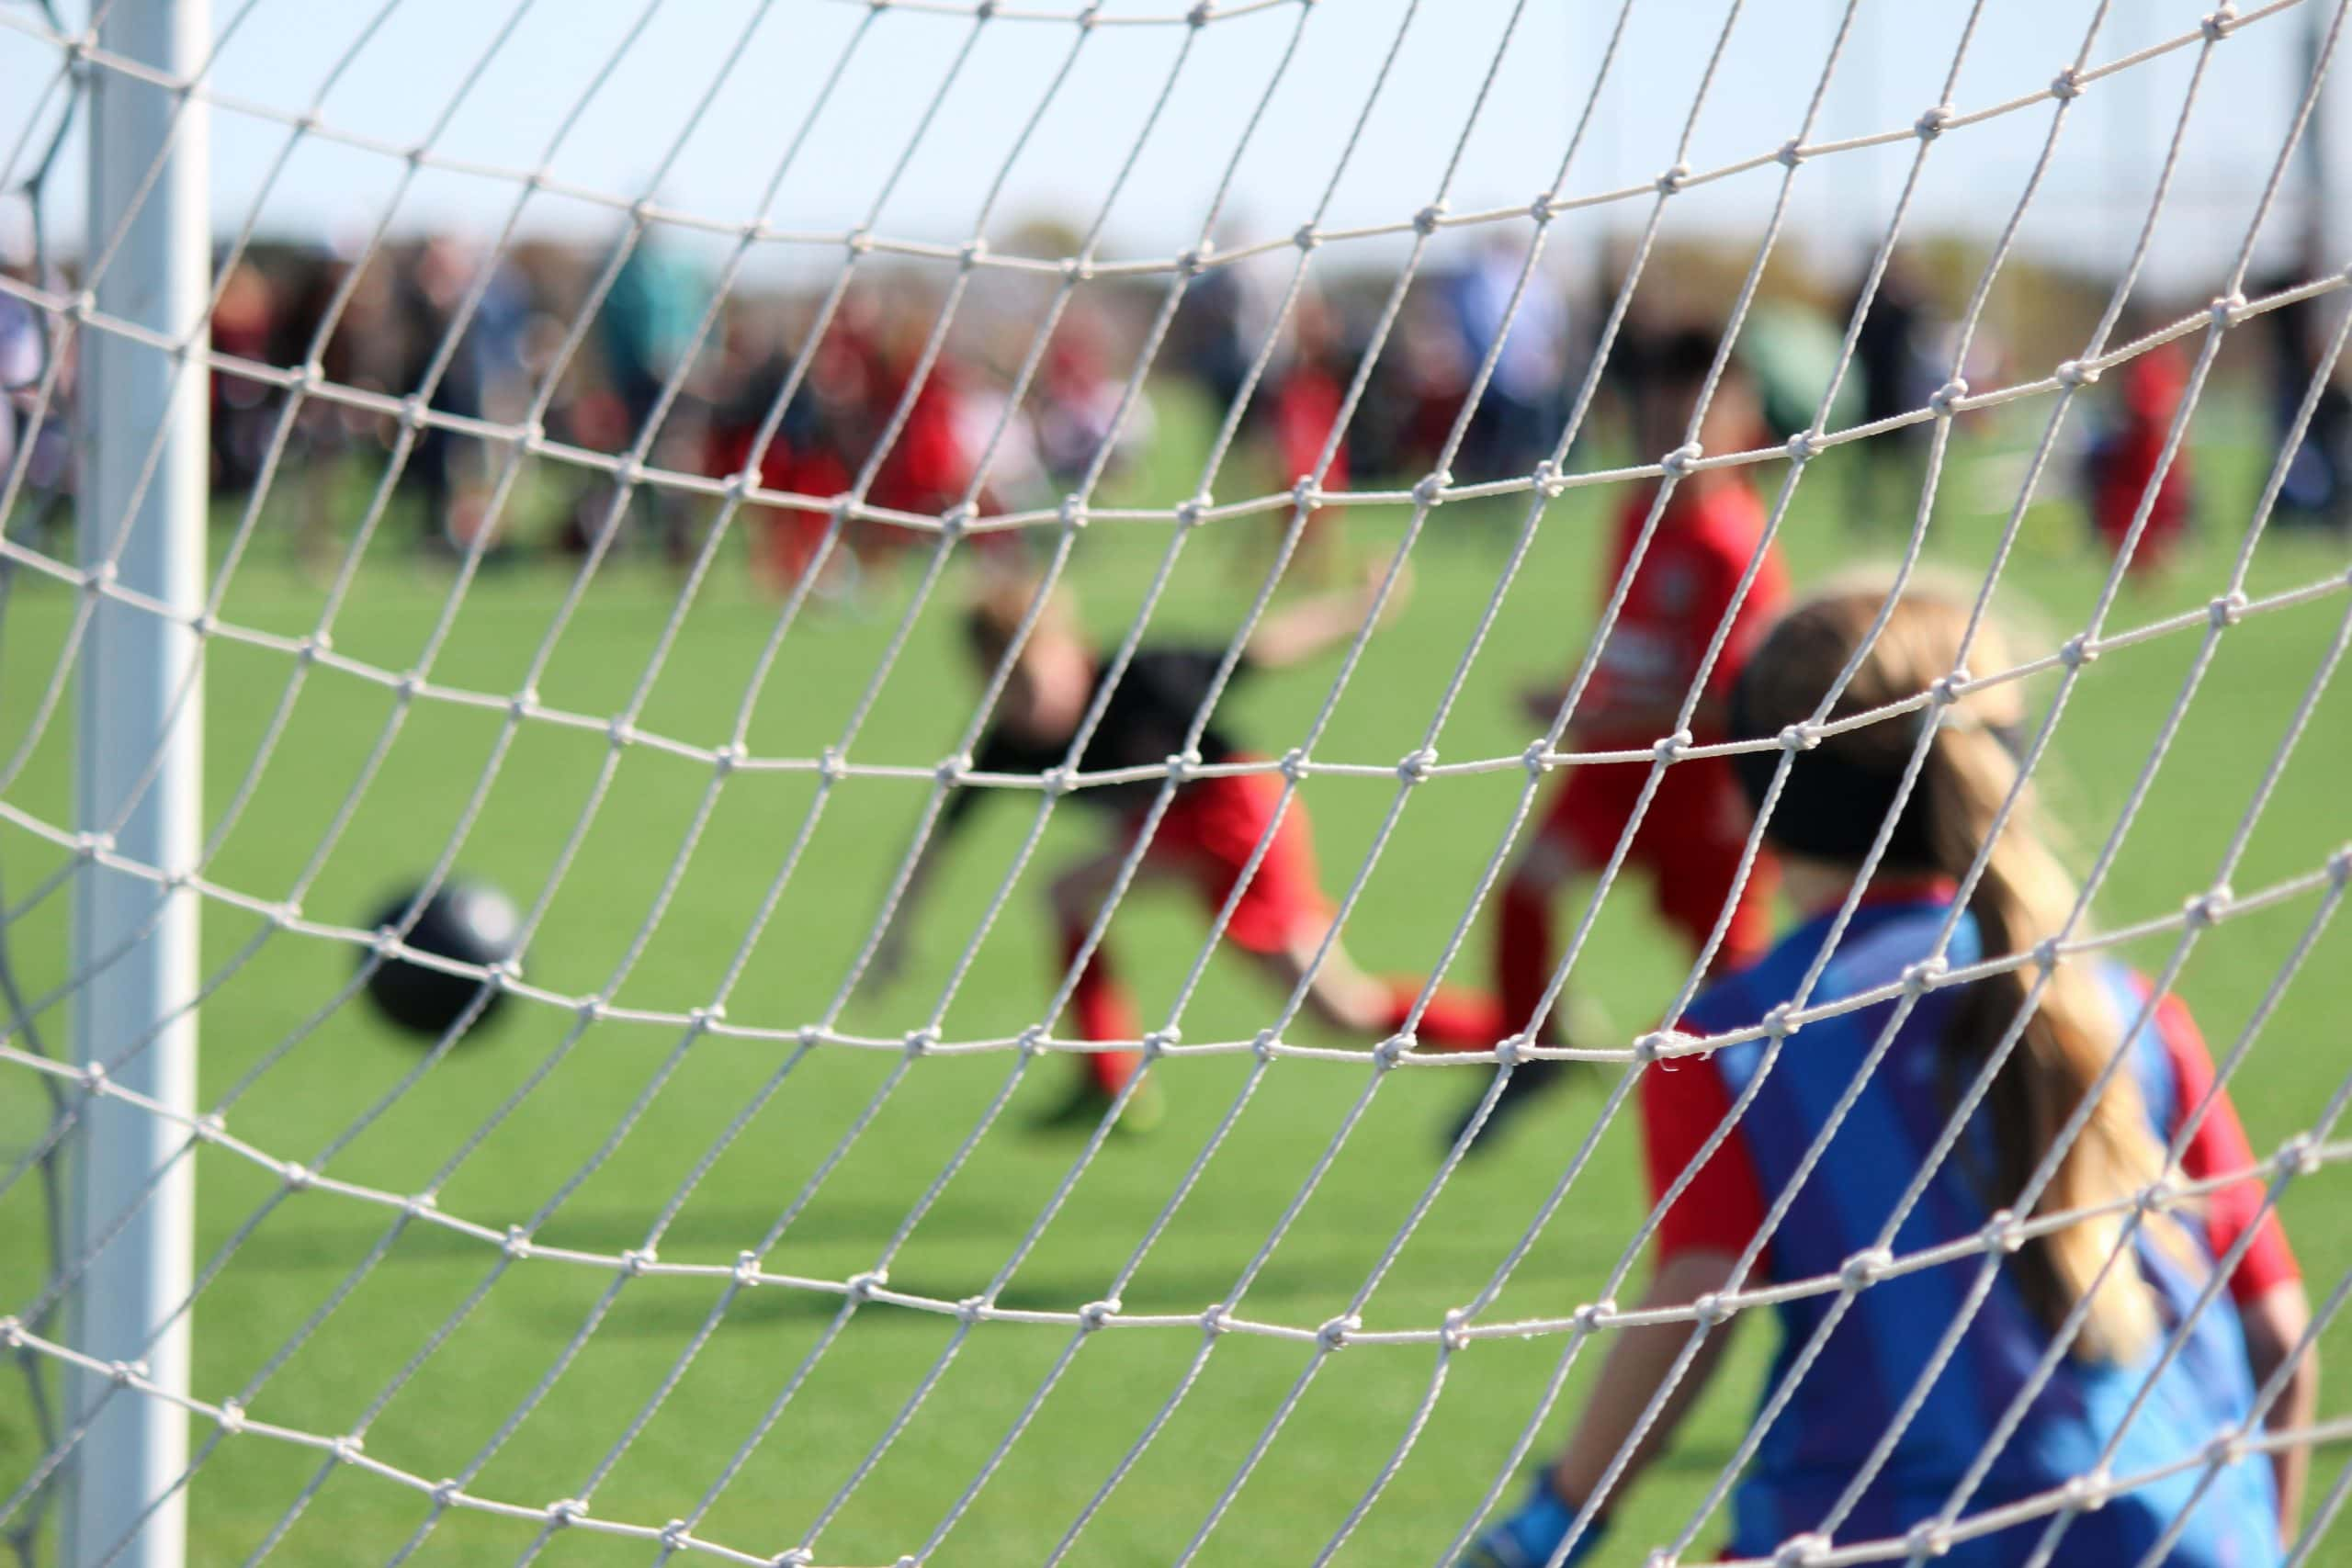 Image from behind a football goal net. In the distance a child is kick a ball towards the child in the goals.